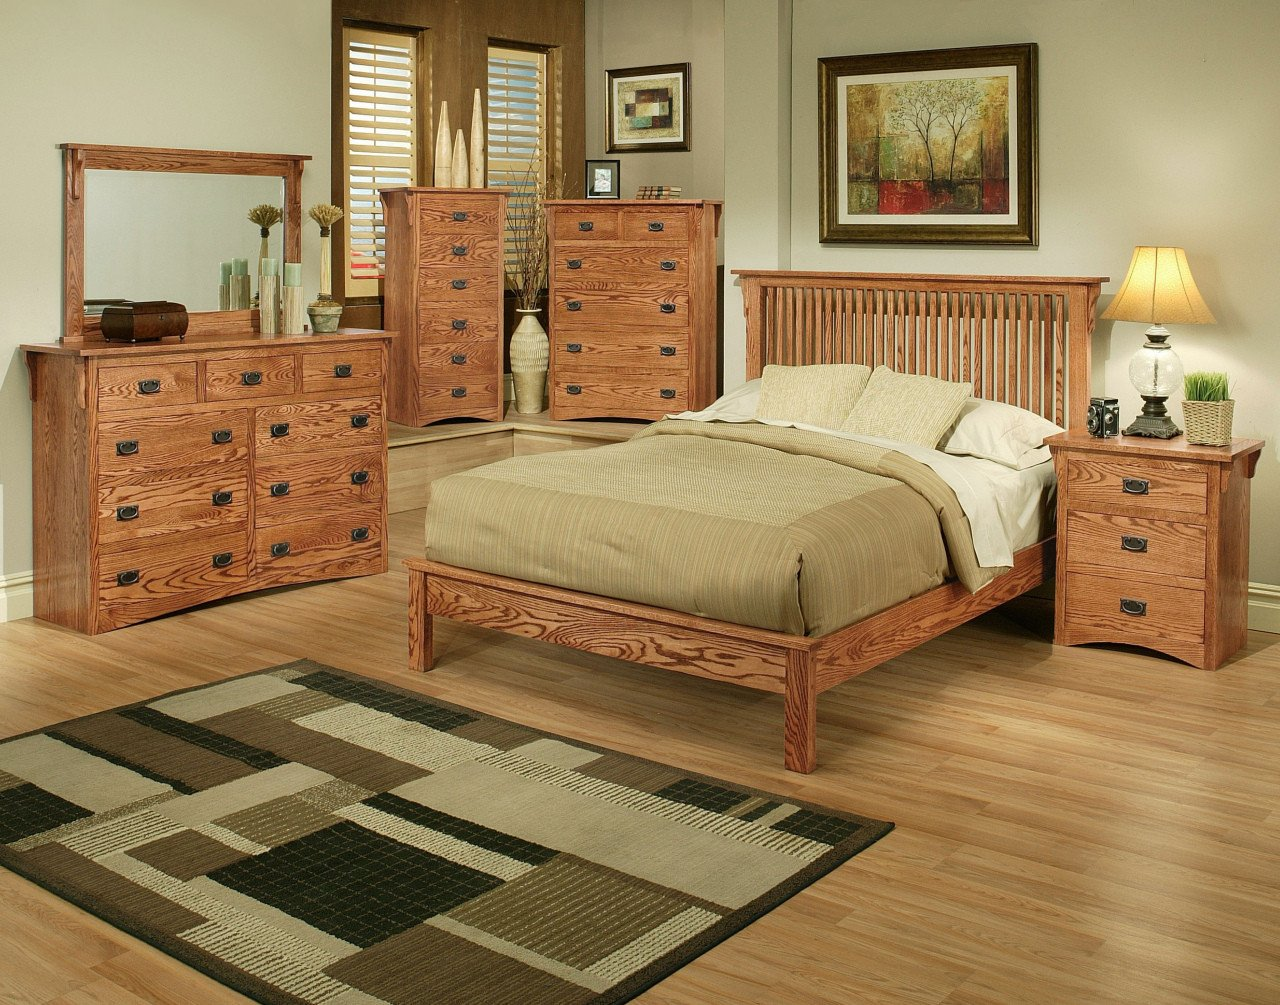 Vintage Thomasville Bedroom Furniture Elegant Thomasville Bedroom Furniture Living Room Beautiful Living